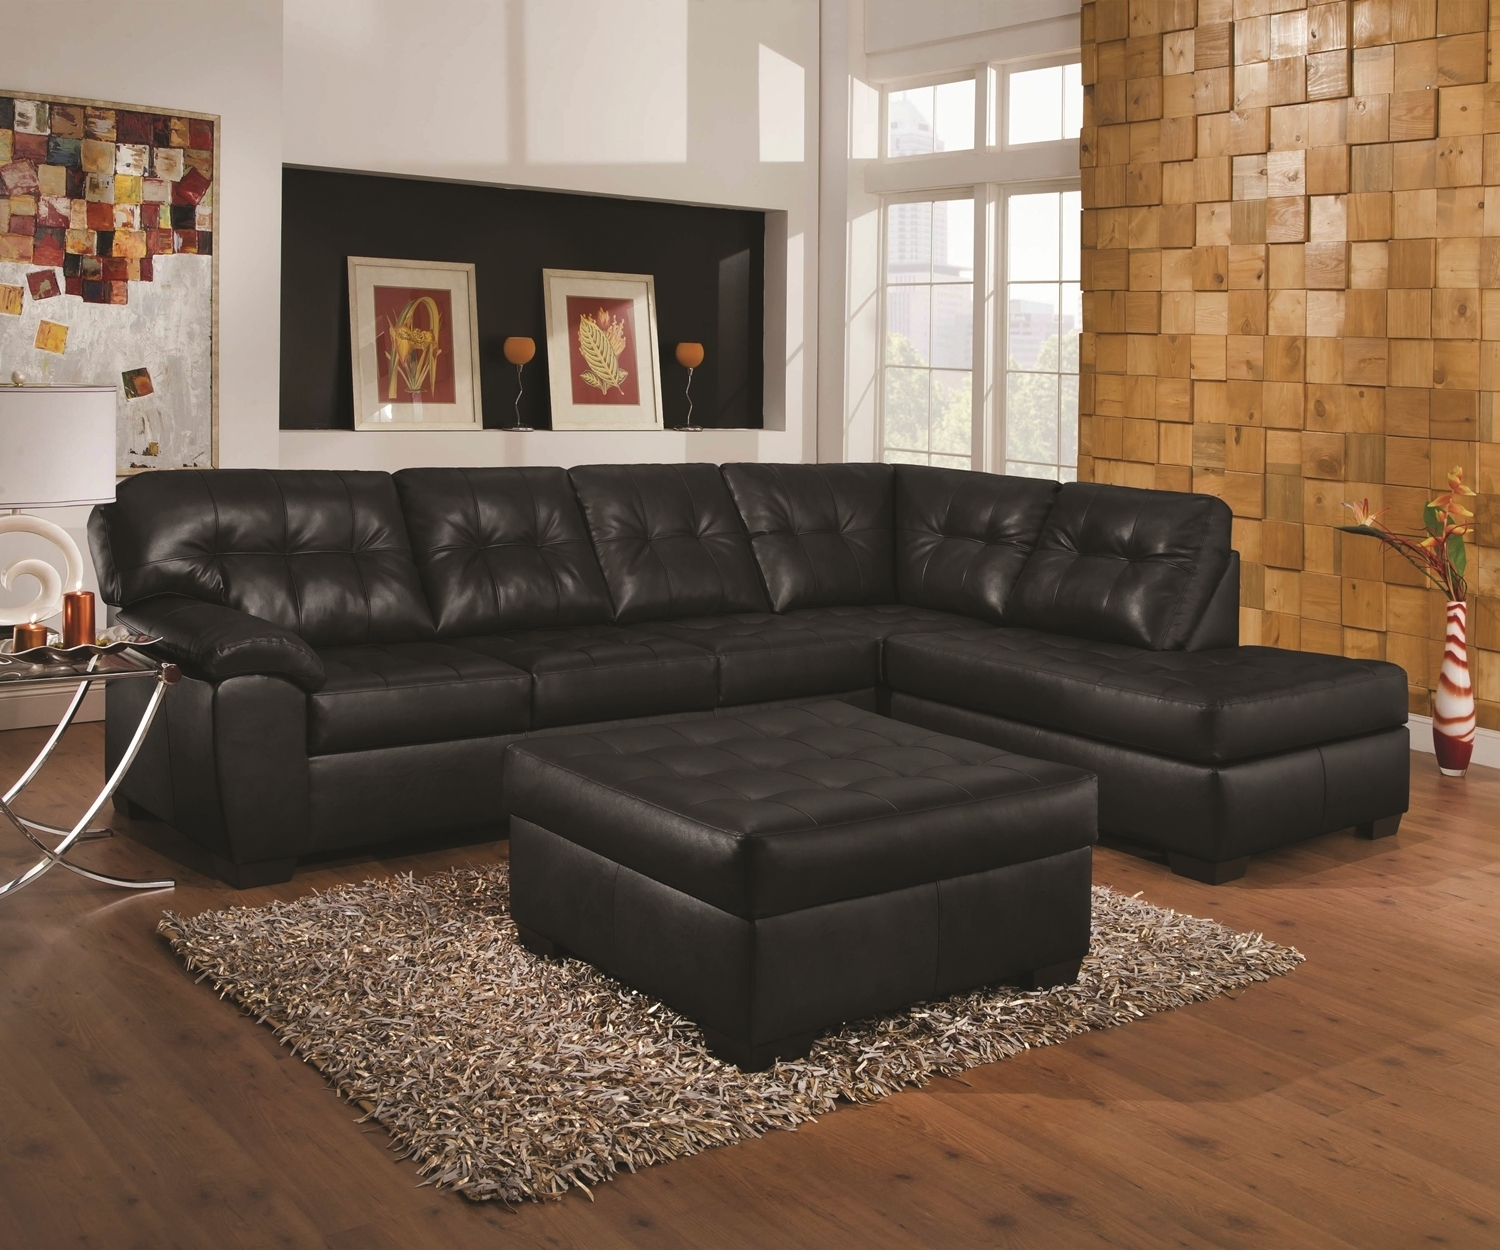 9569 Soho Onyx [9569 Soho Onyx] - $869 : All Things Delivered, Dfw with Evan 2 Piece Sectionals With Raf Chaise